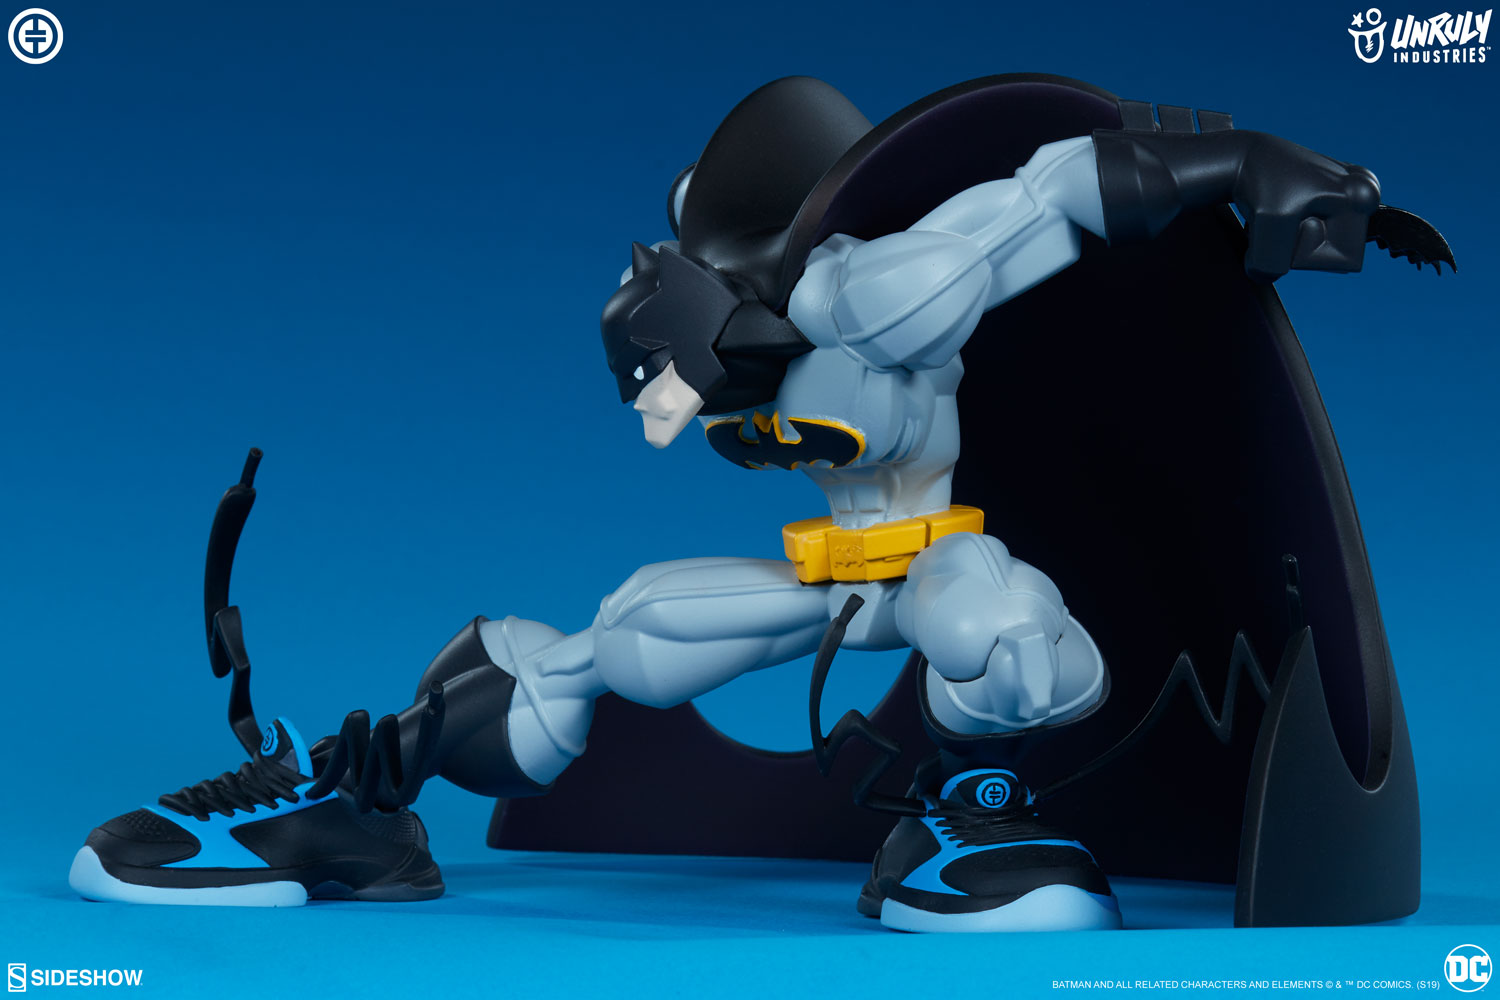 Sideshow Collectibles - Unruly Industries - Batman